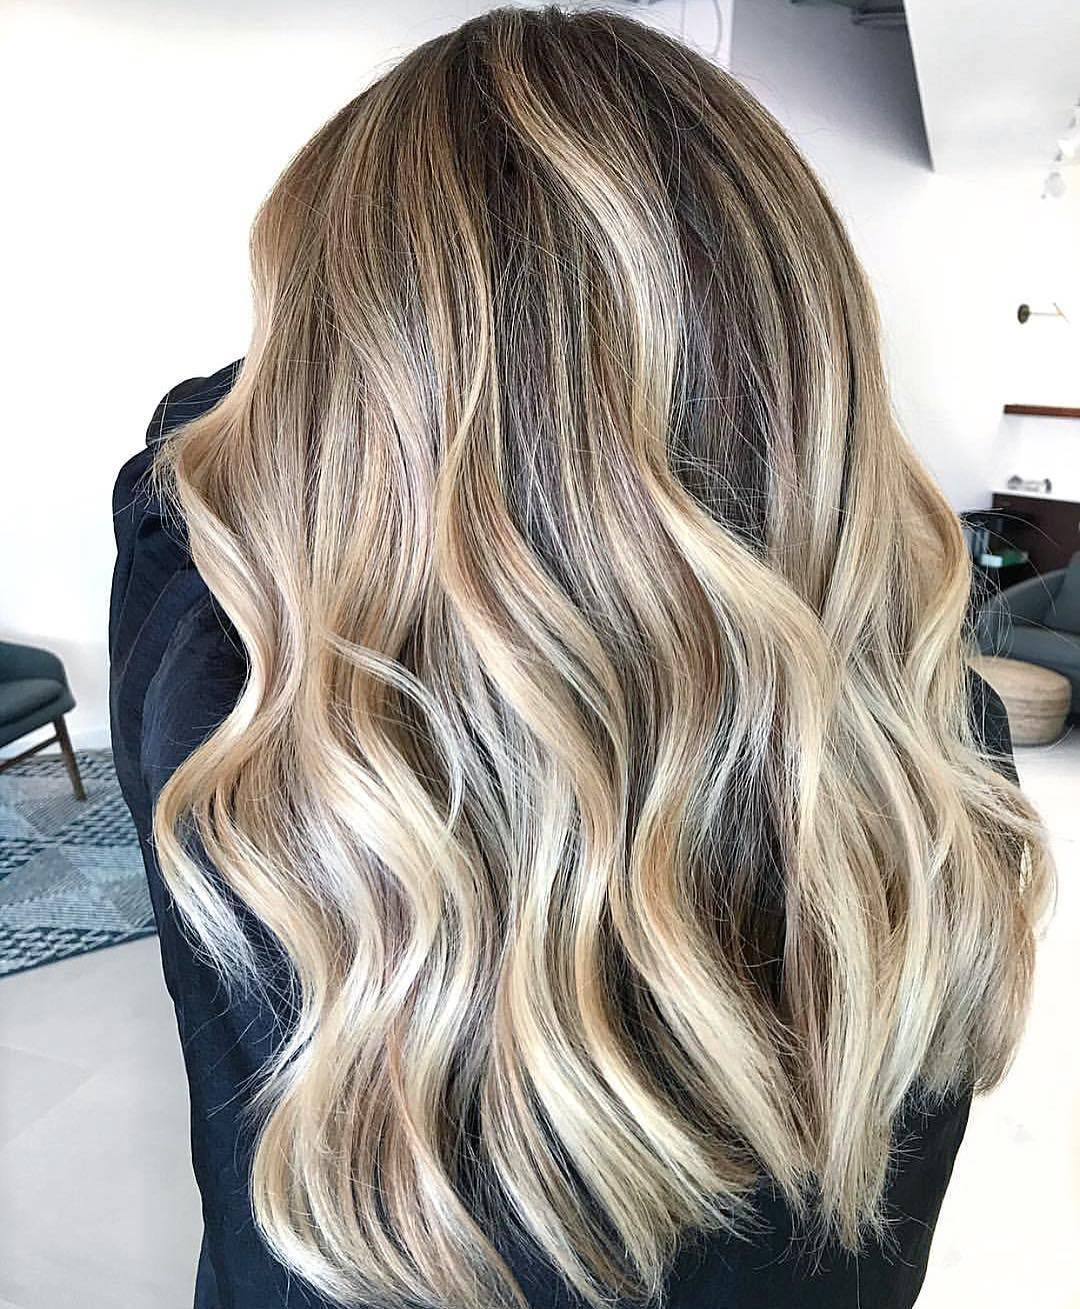 Beach Waves And Straight Hair With Ice Blond Balayage